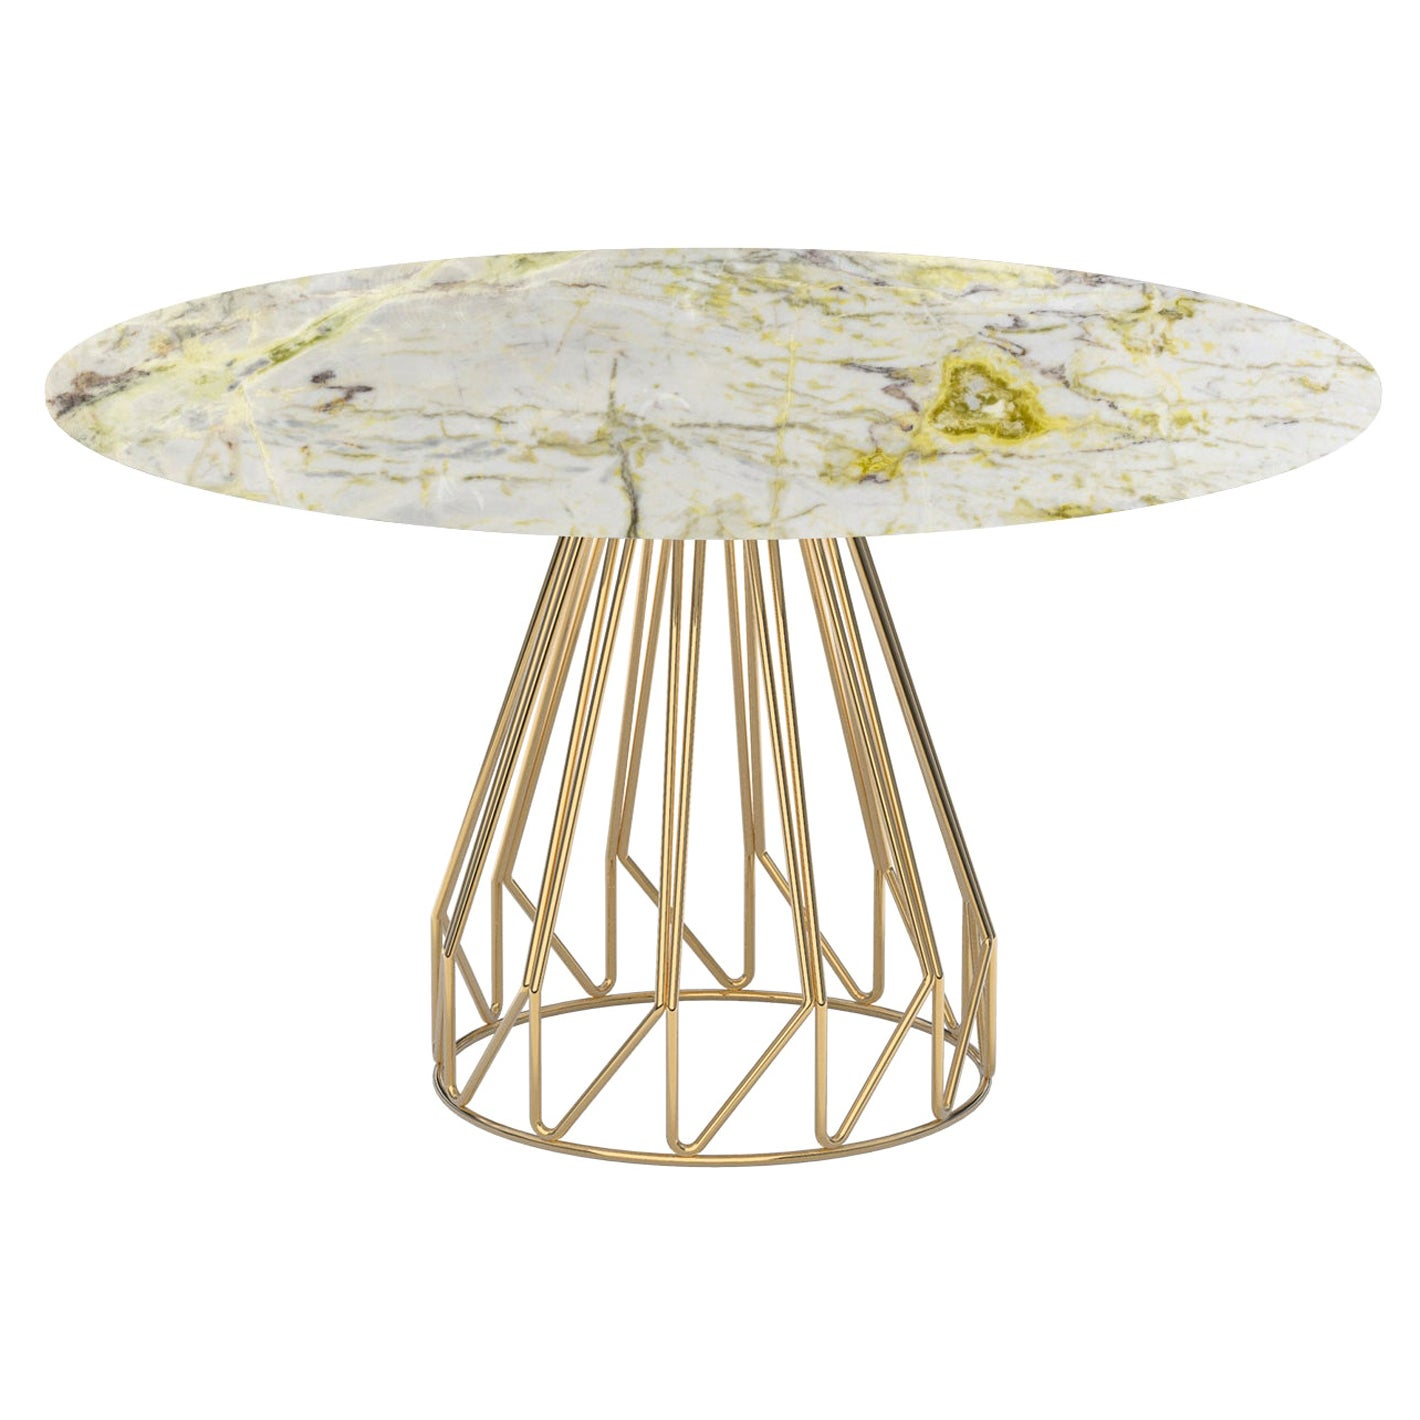 Contemporary Minimalist Table Gold, Calacatta Green Made in Italy by LapiegaWD